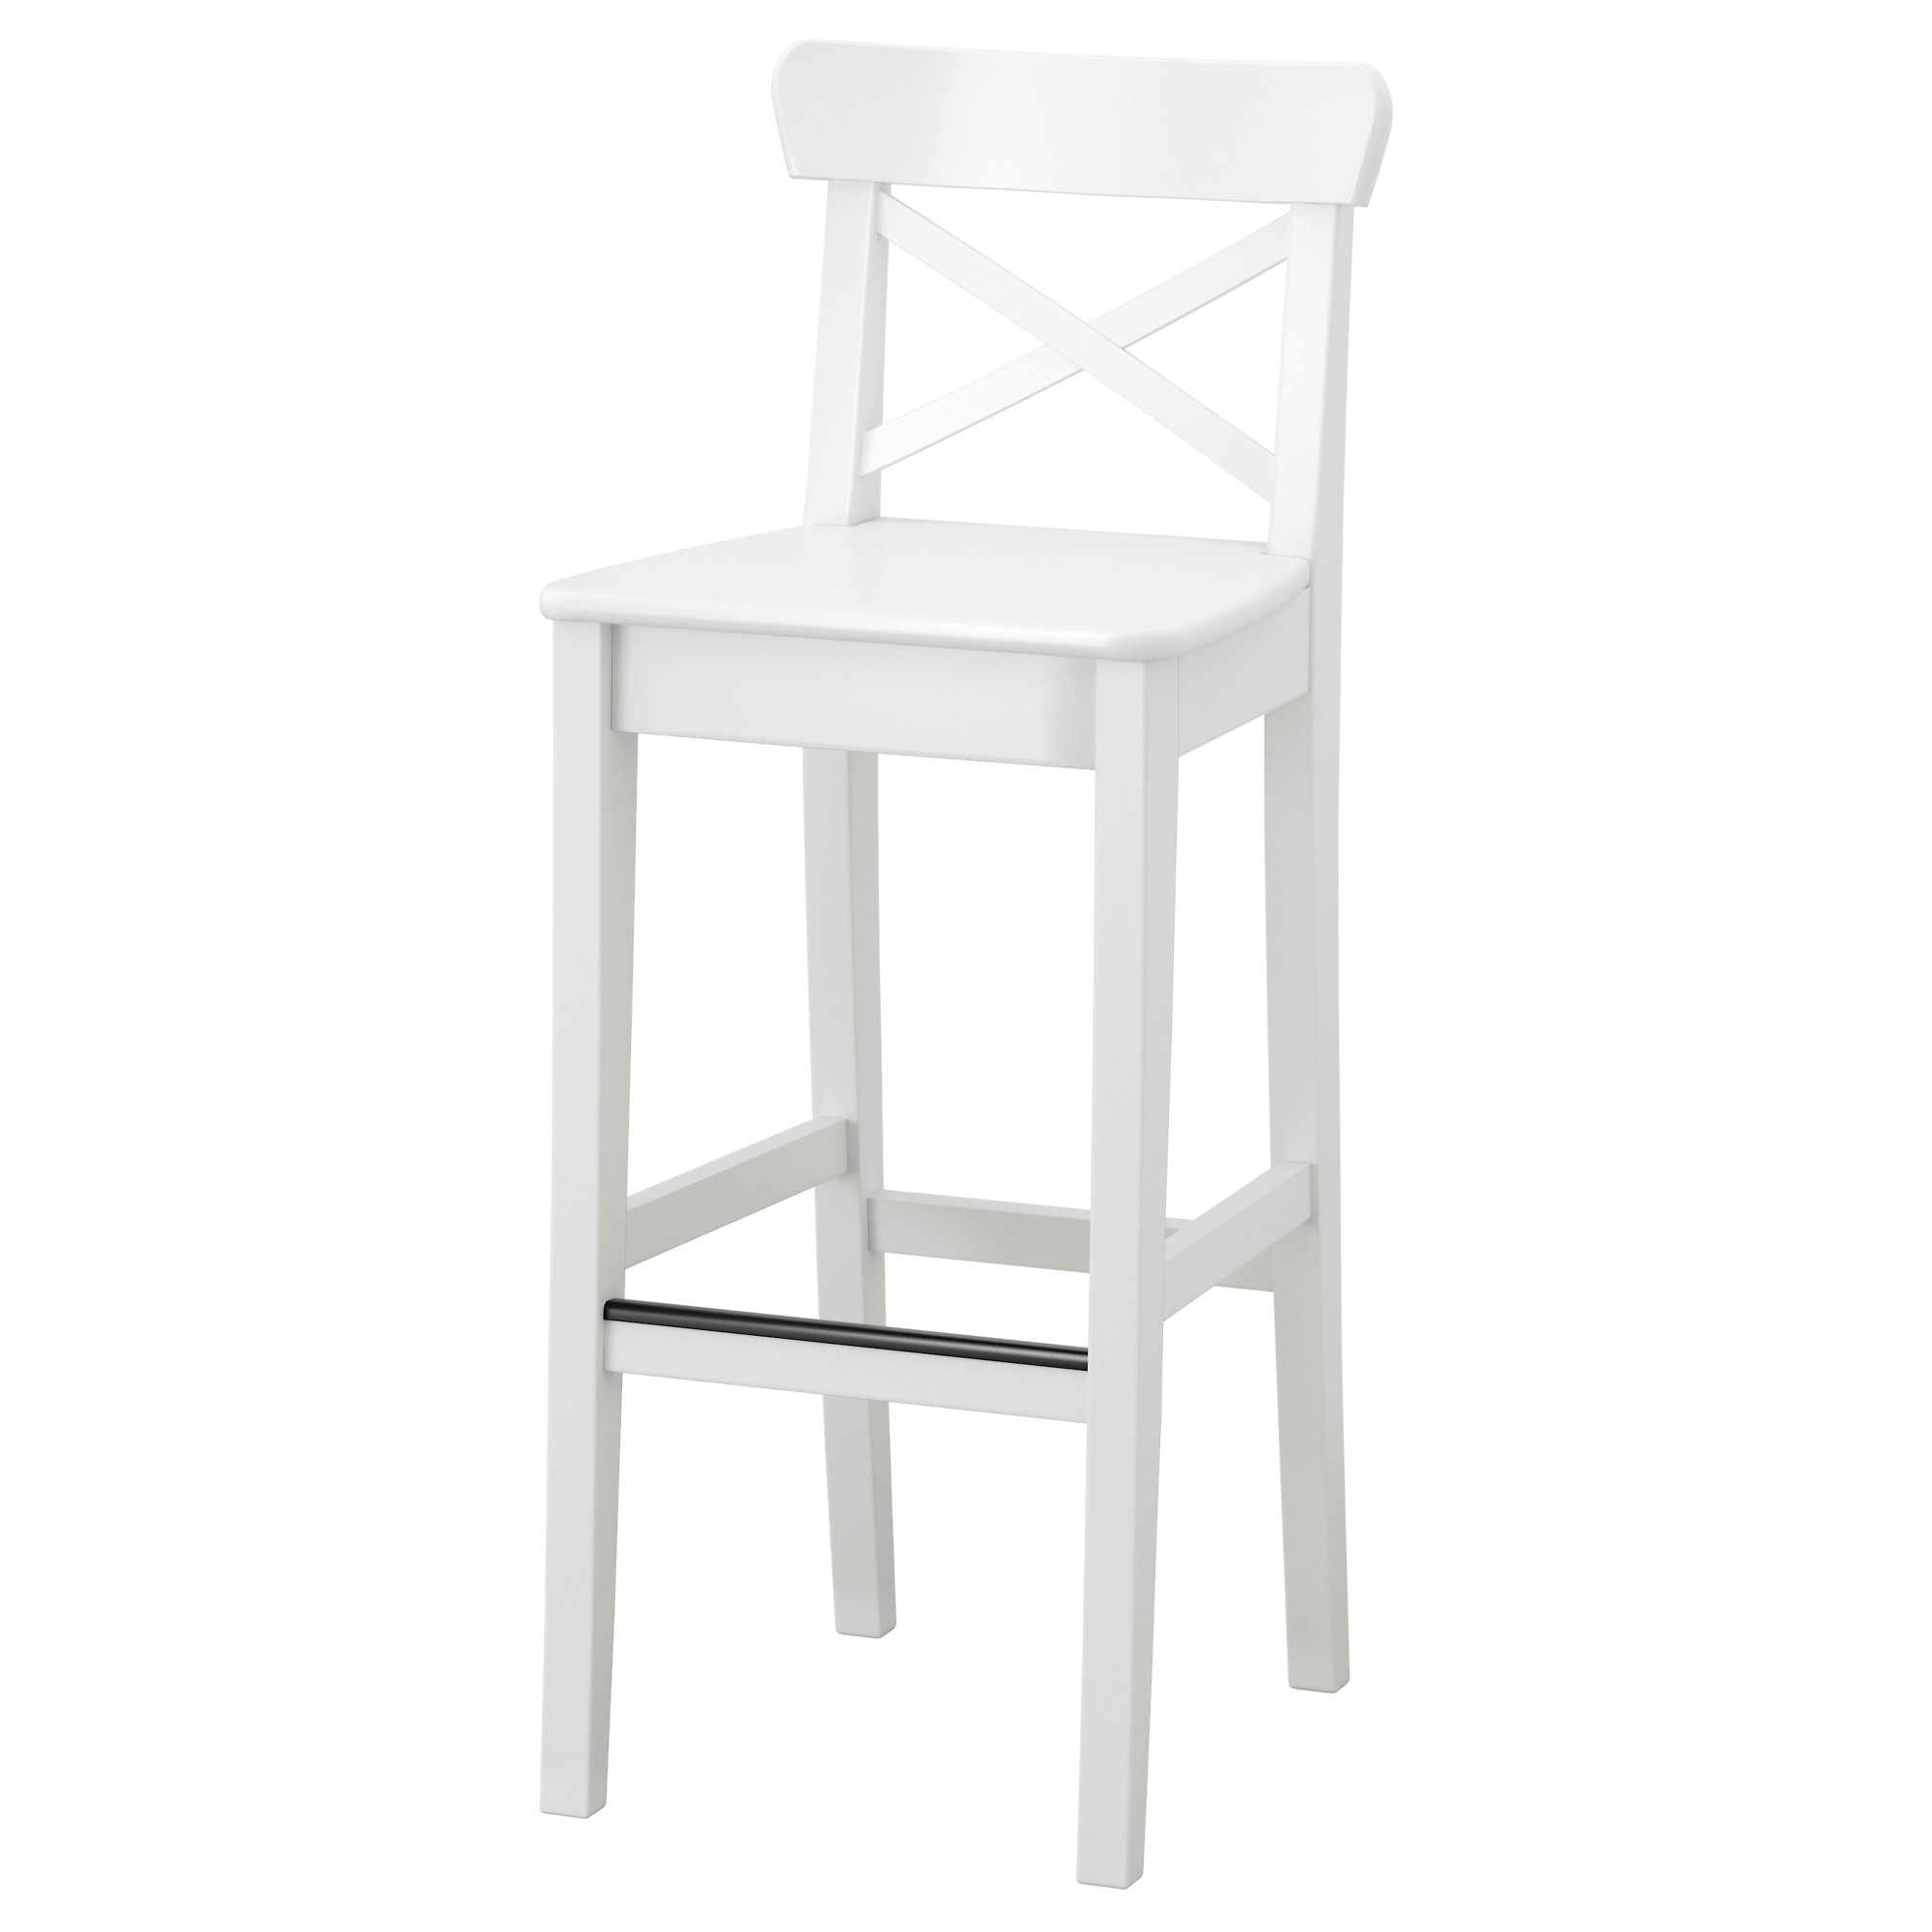 ikea latvia shop for furniture lighting home accessories more rh ikea lv white wooden stool ikea white wooden stool nz